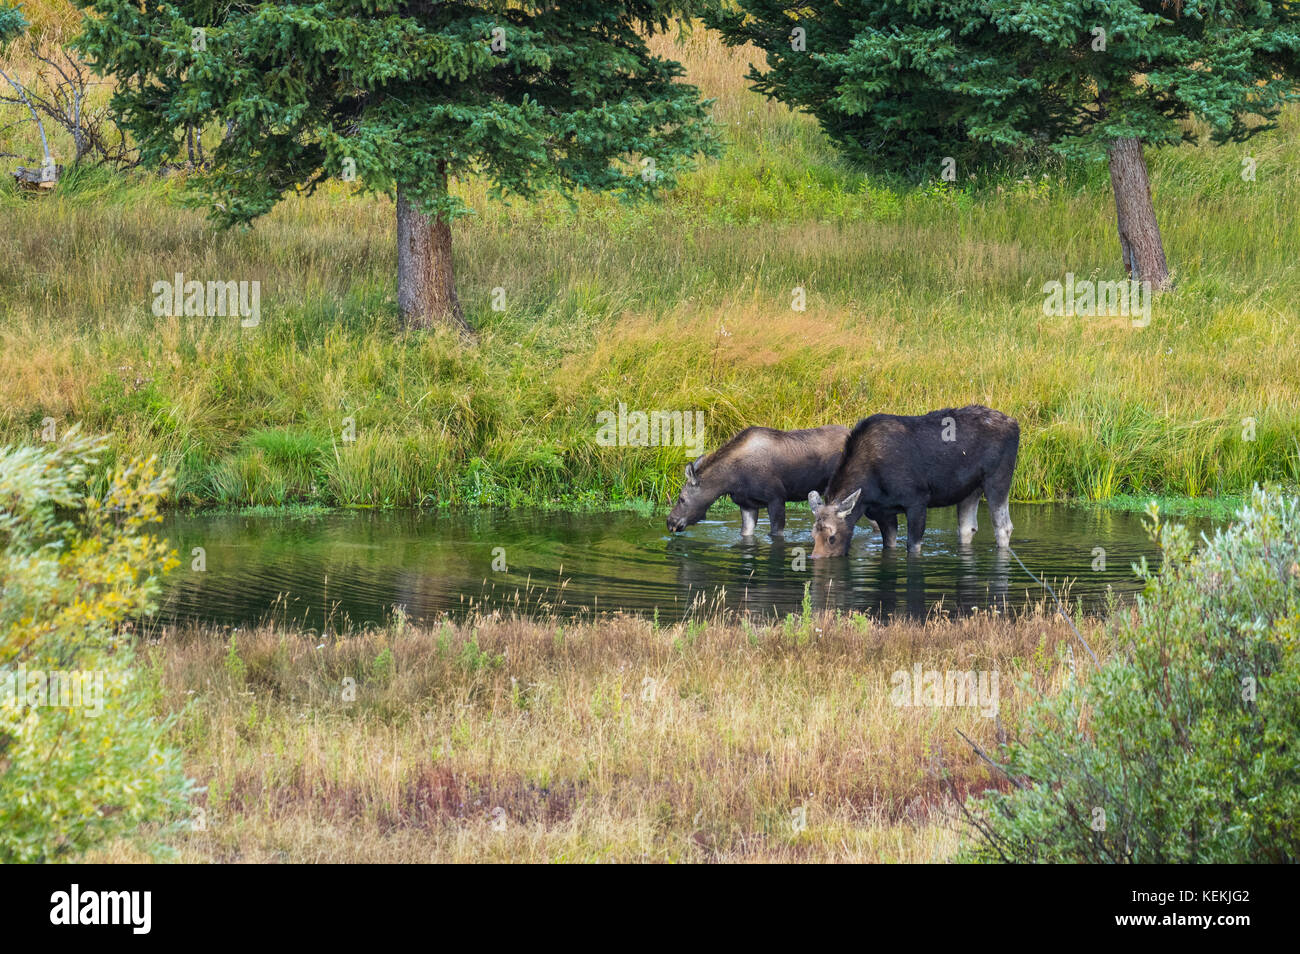 A female moose cares and grazes with her young calf along the Snake River in Wyoming, USA. - Stock Image